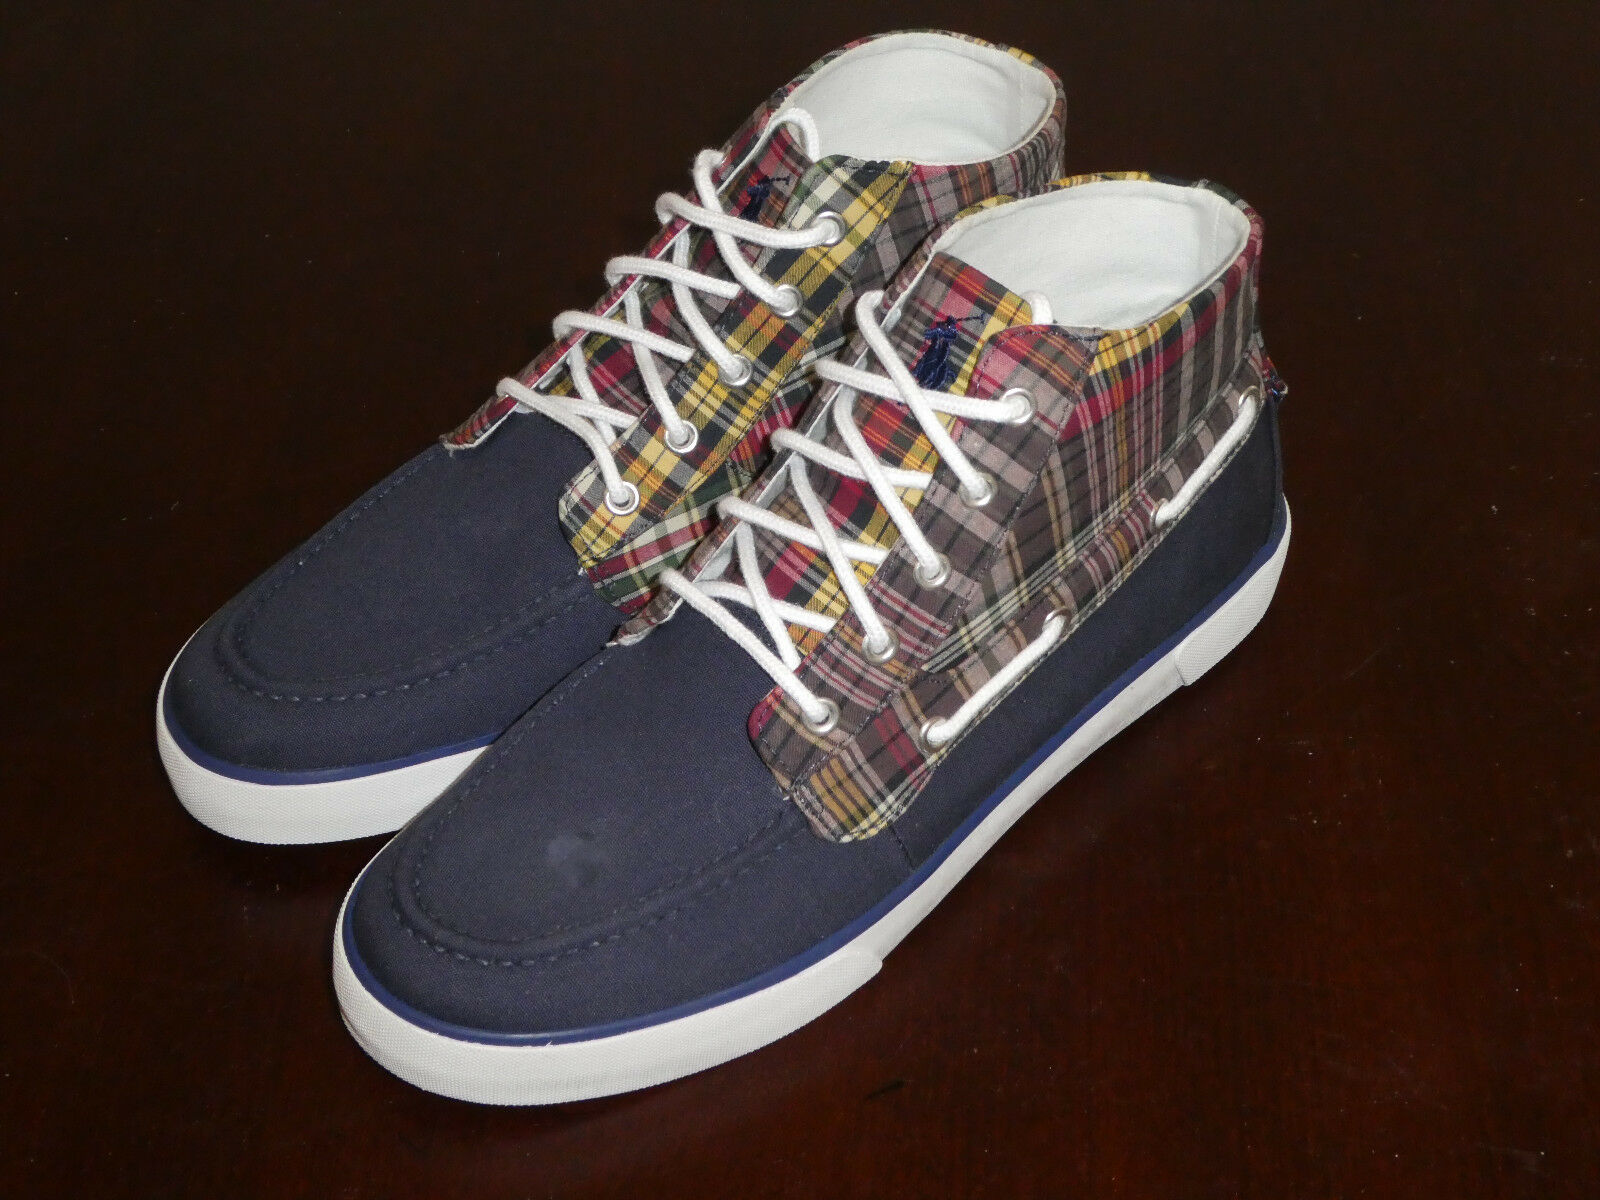 Polo Ralph Lauren Lander Chukka homme chaussures sneakers new defect fruit canvas defect new 802ad6